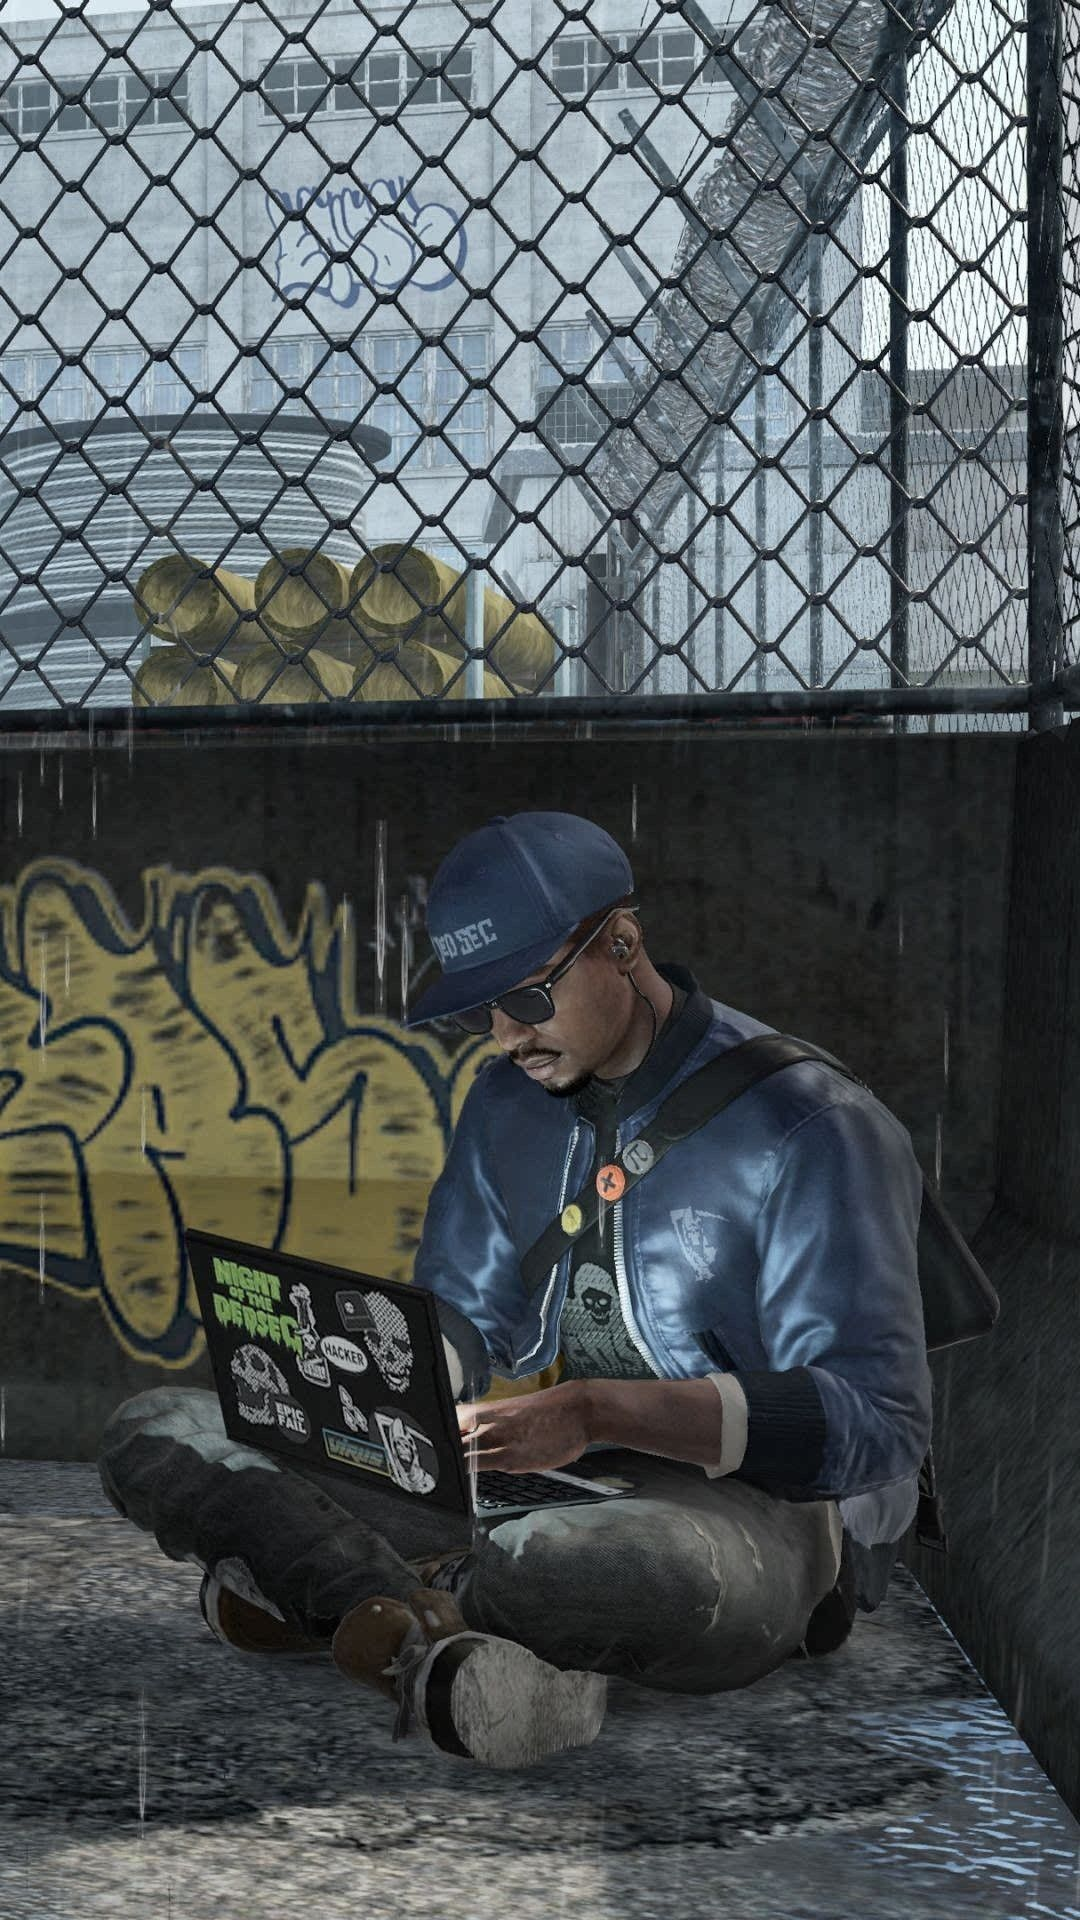 Marcus Holloway Watch Dogs 2 Watch Dogs Watch Dogs Art Dog Wallpaper Watch dogs 2 wallpaper hd for android